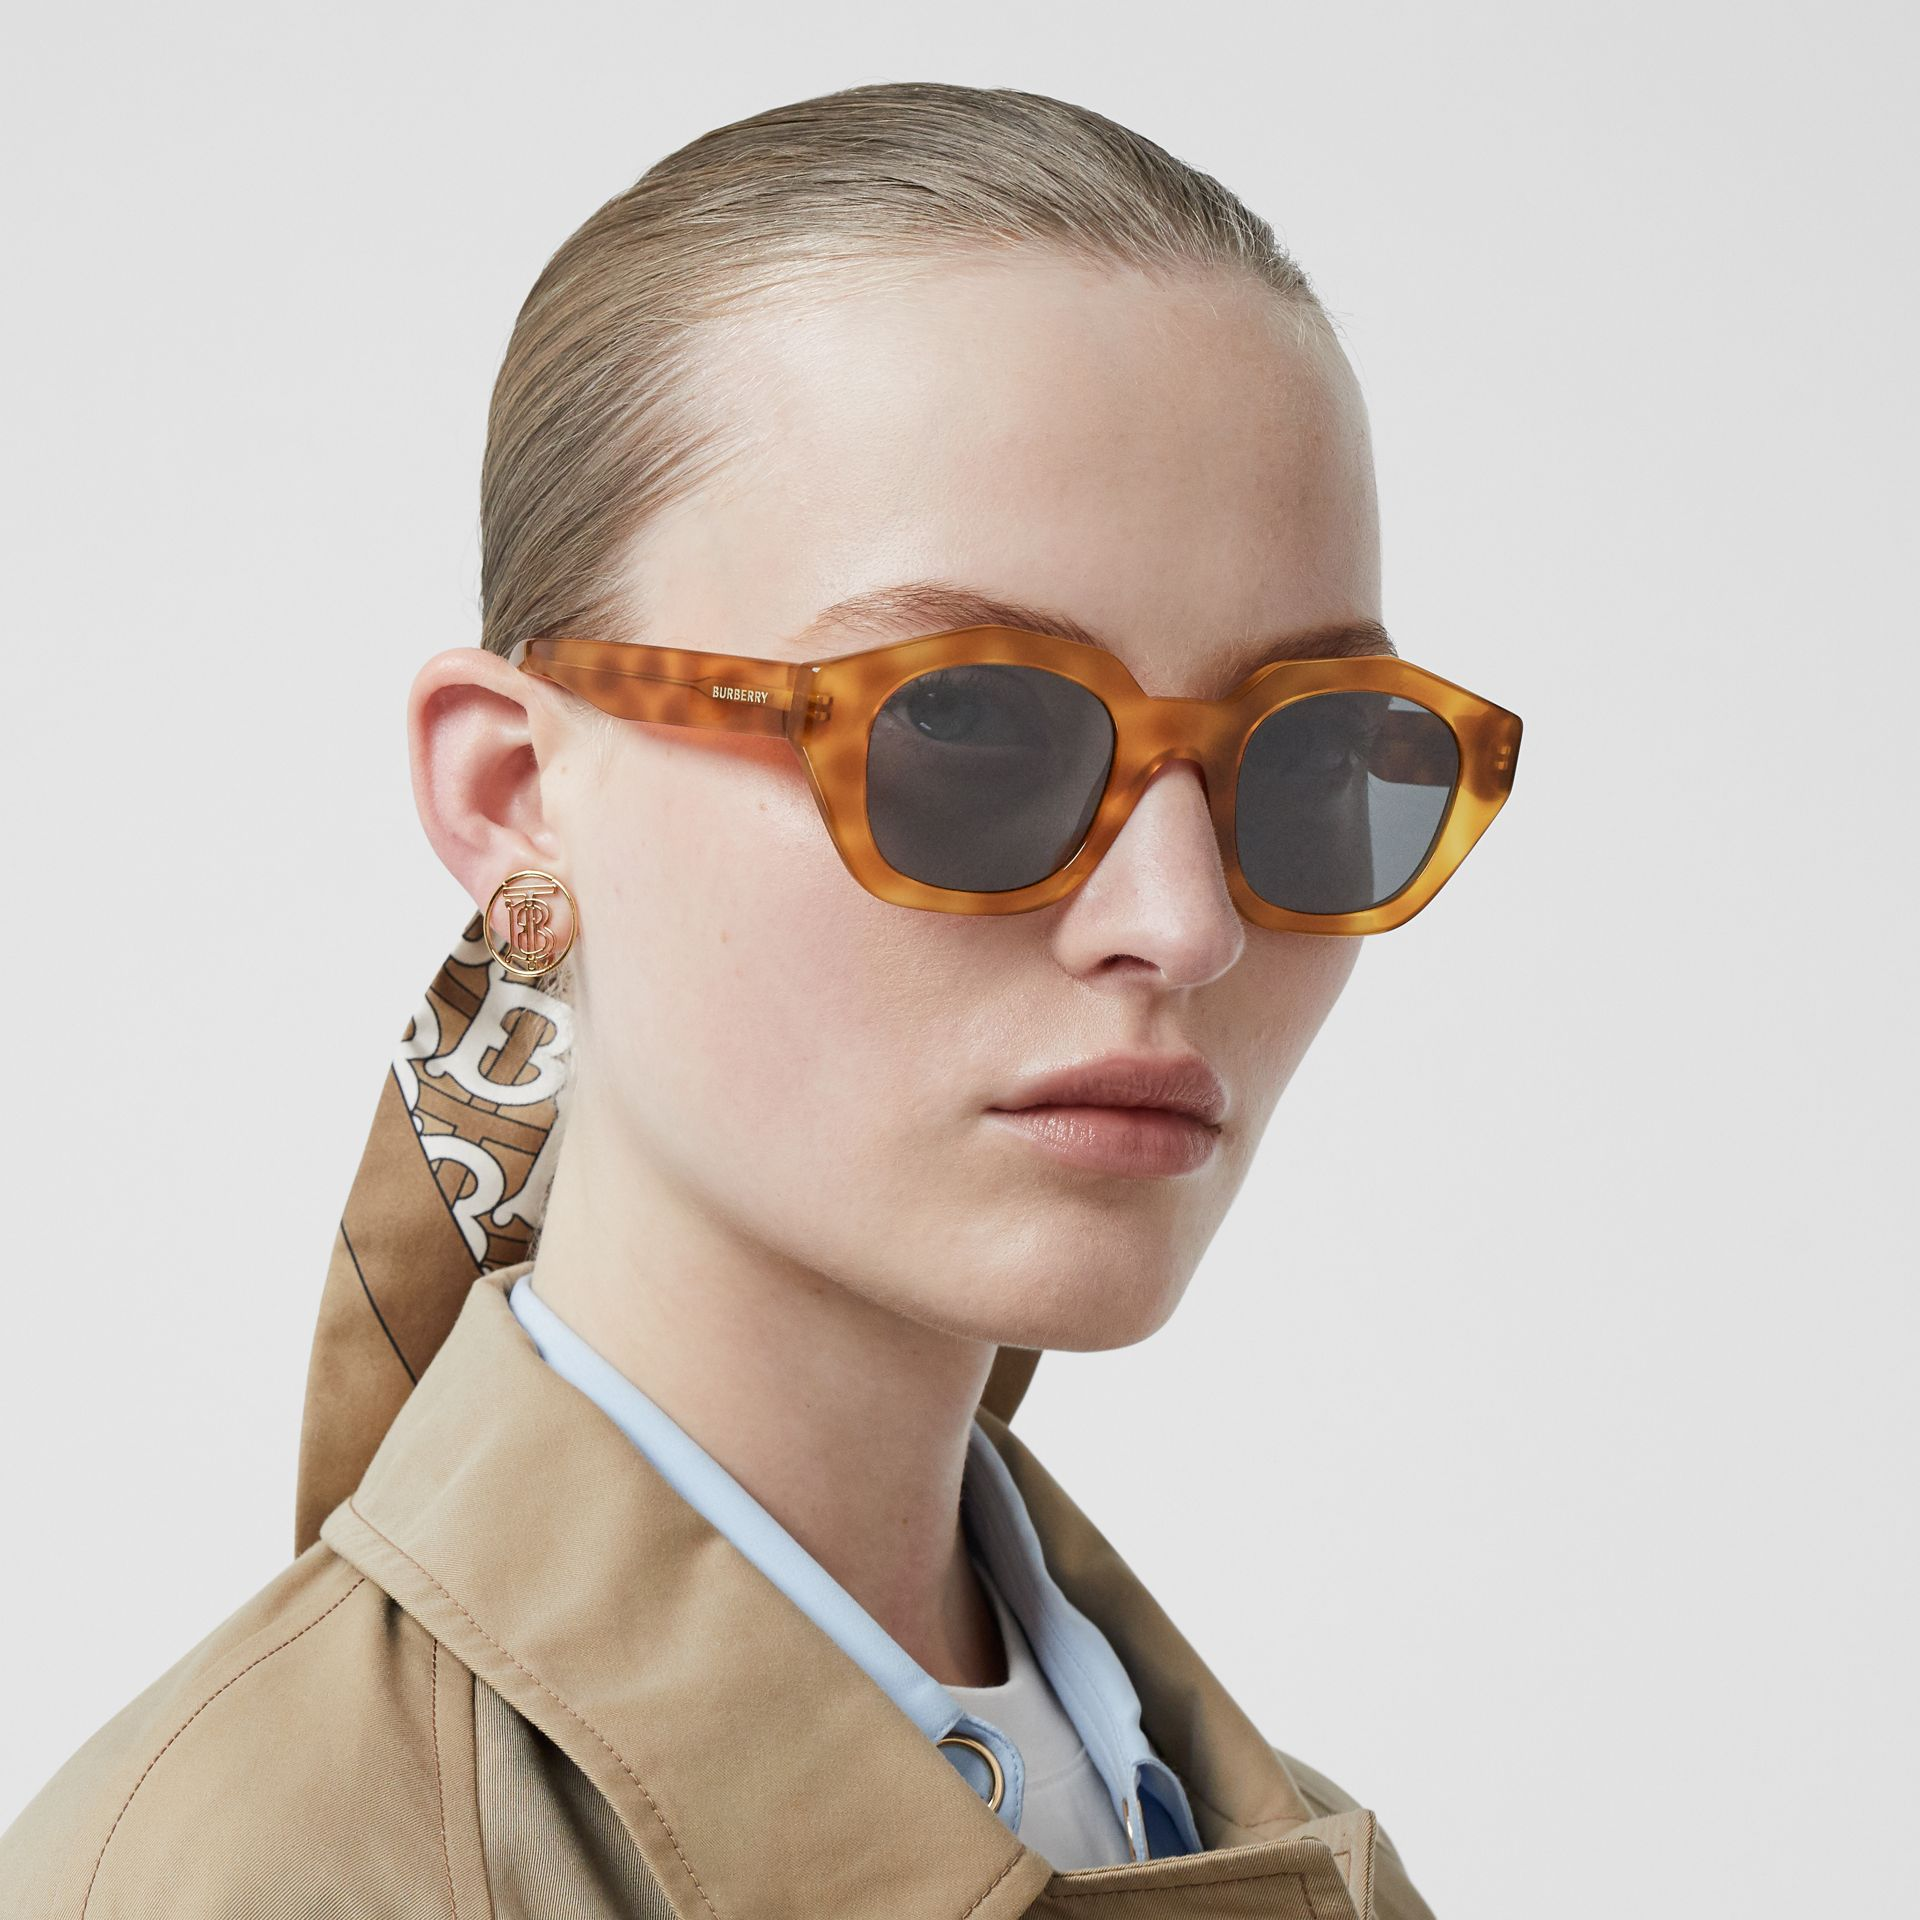 Geometric Frame Sunglasses in Tortoiseshell Amber - Women | Burberry Singapore - gallery image 2